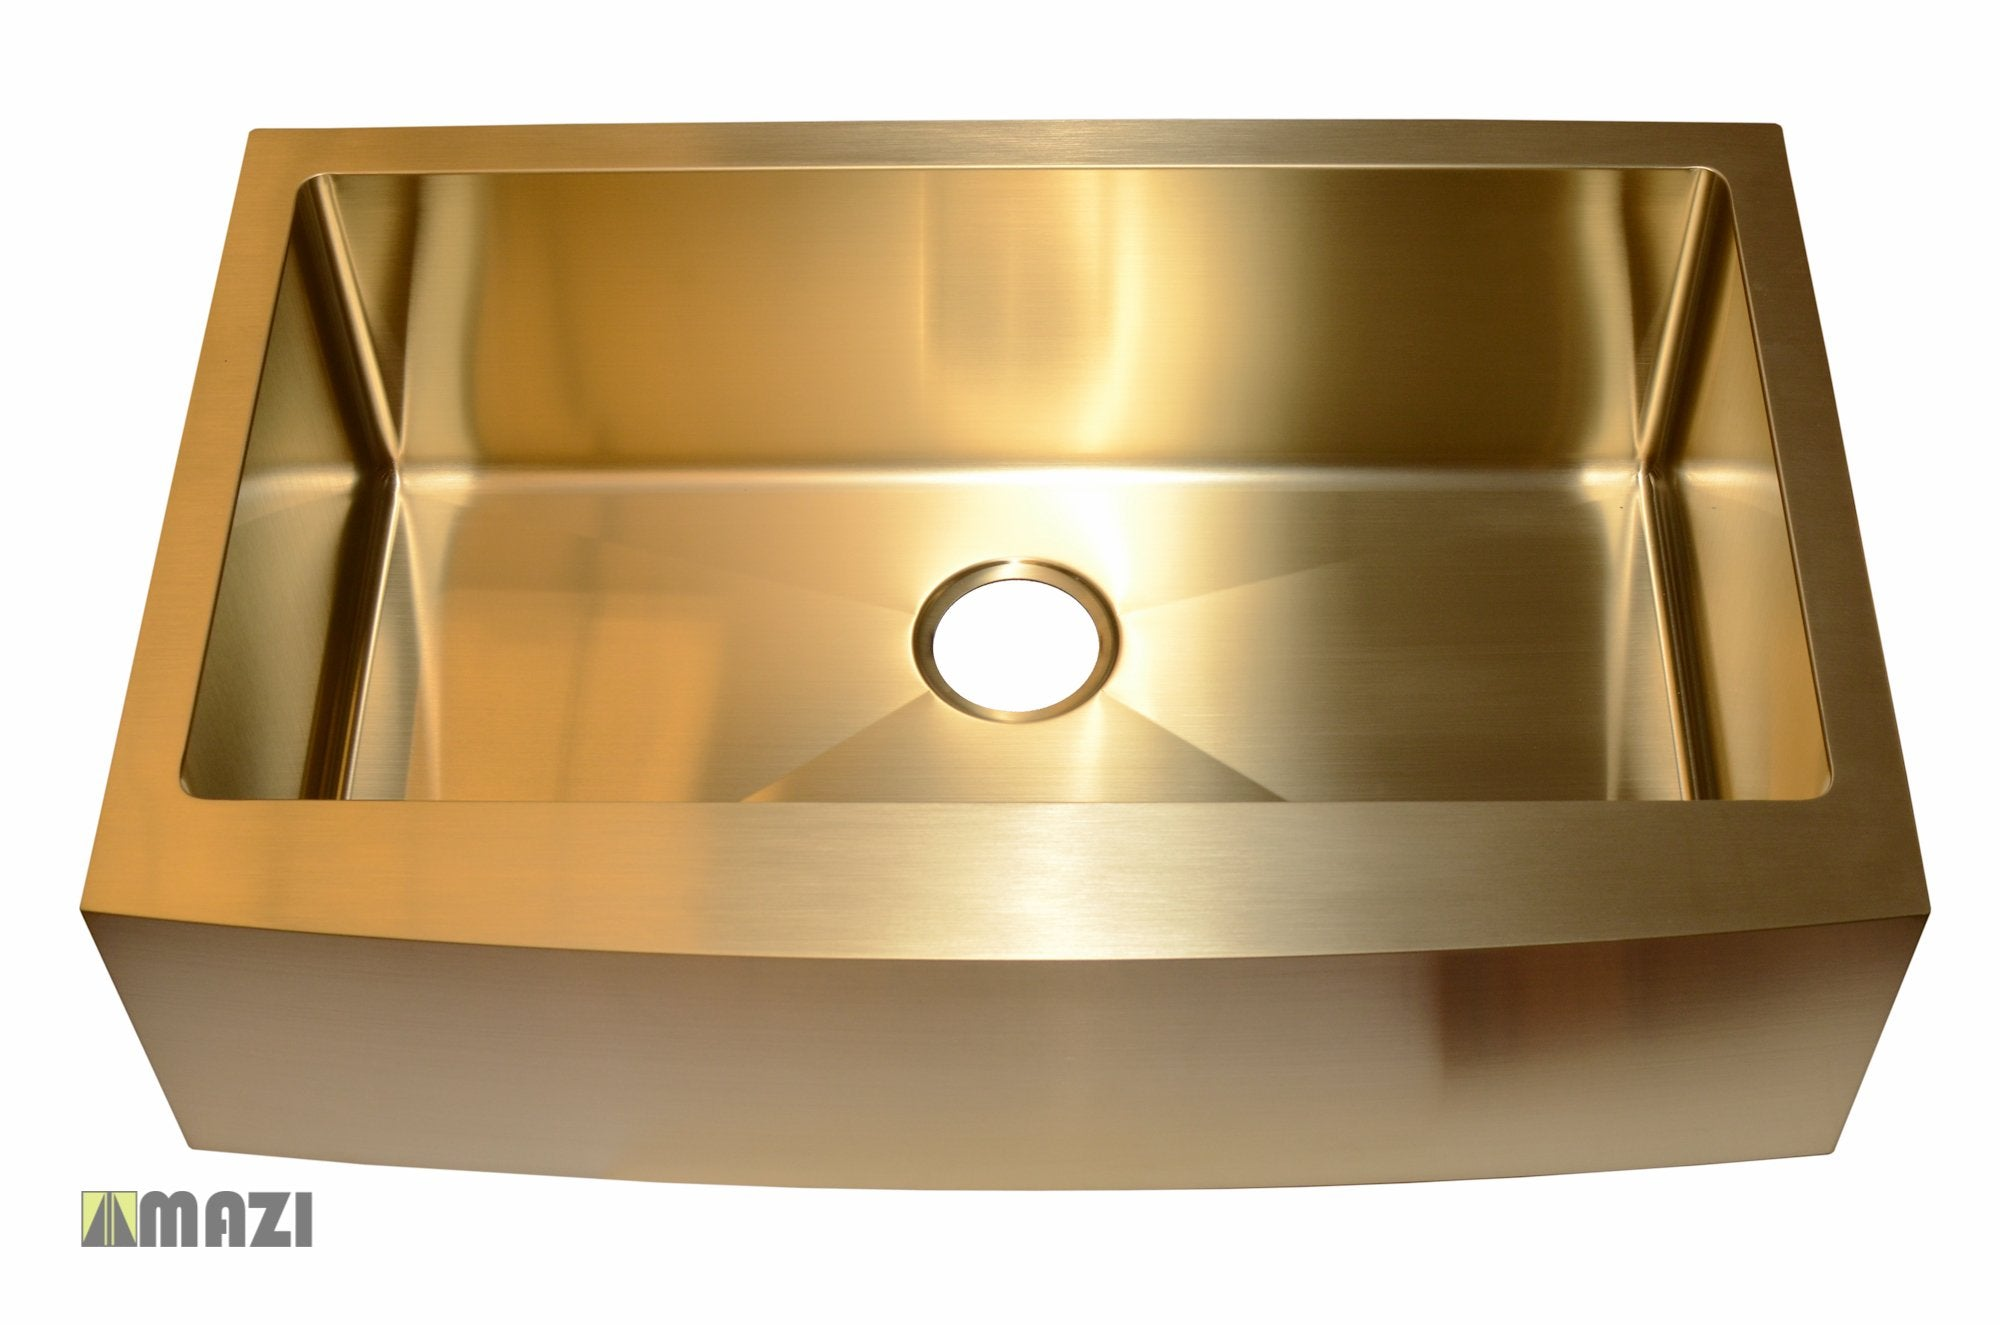 stainless steel handmade color kitchen sink ac1013 gold color mazi rh mazi sinks com